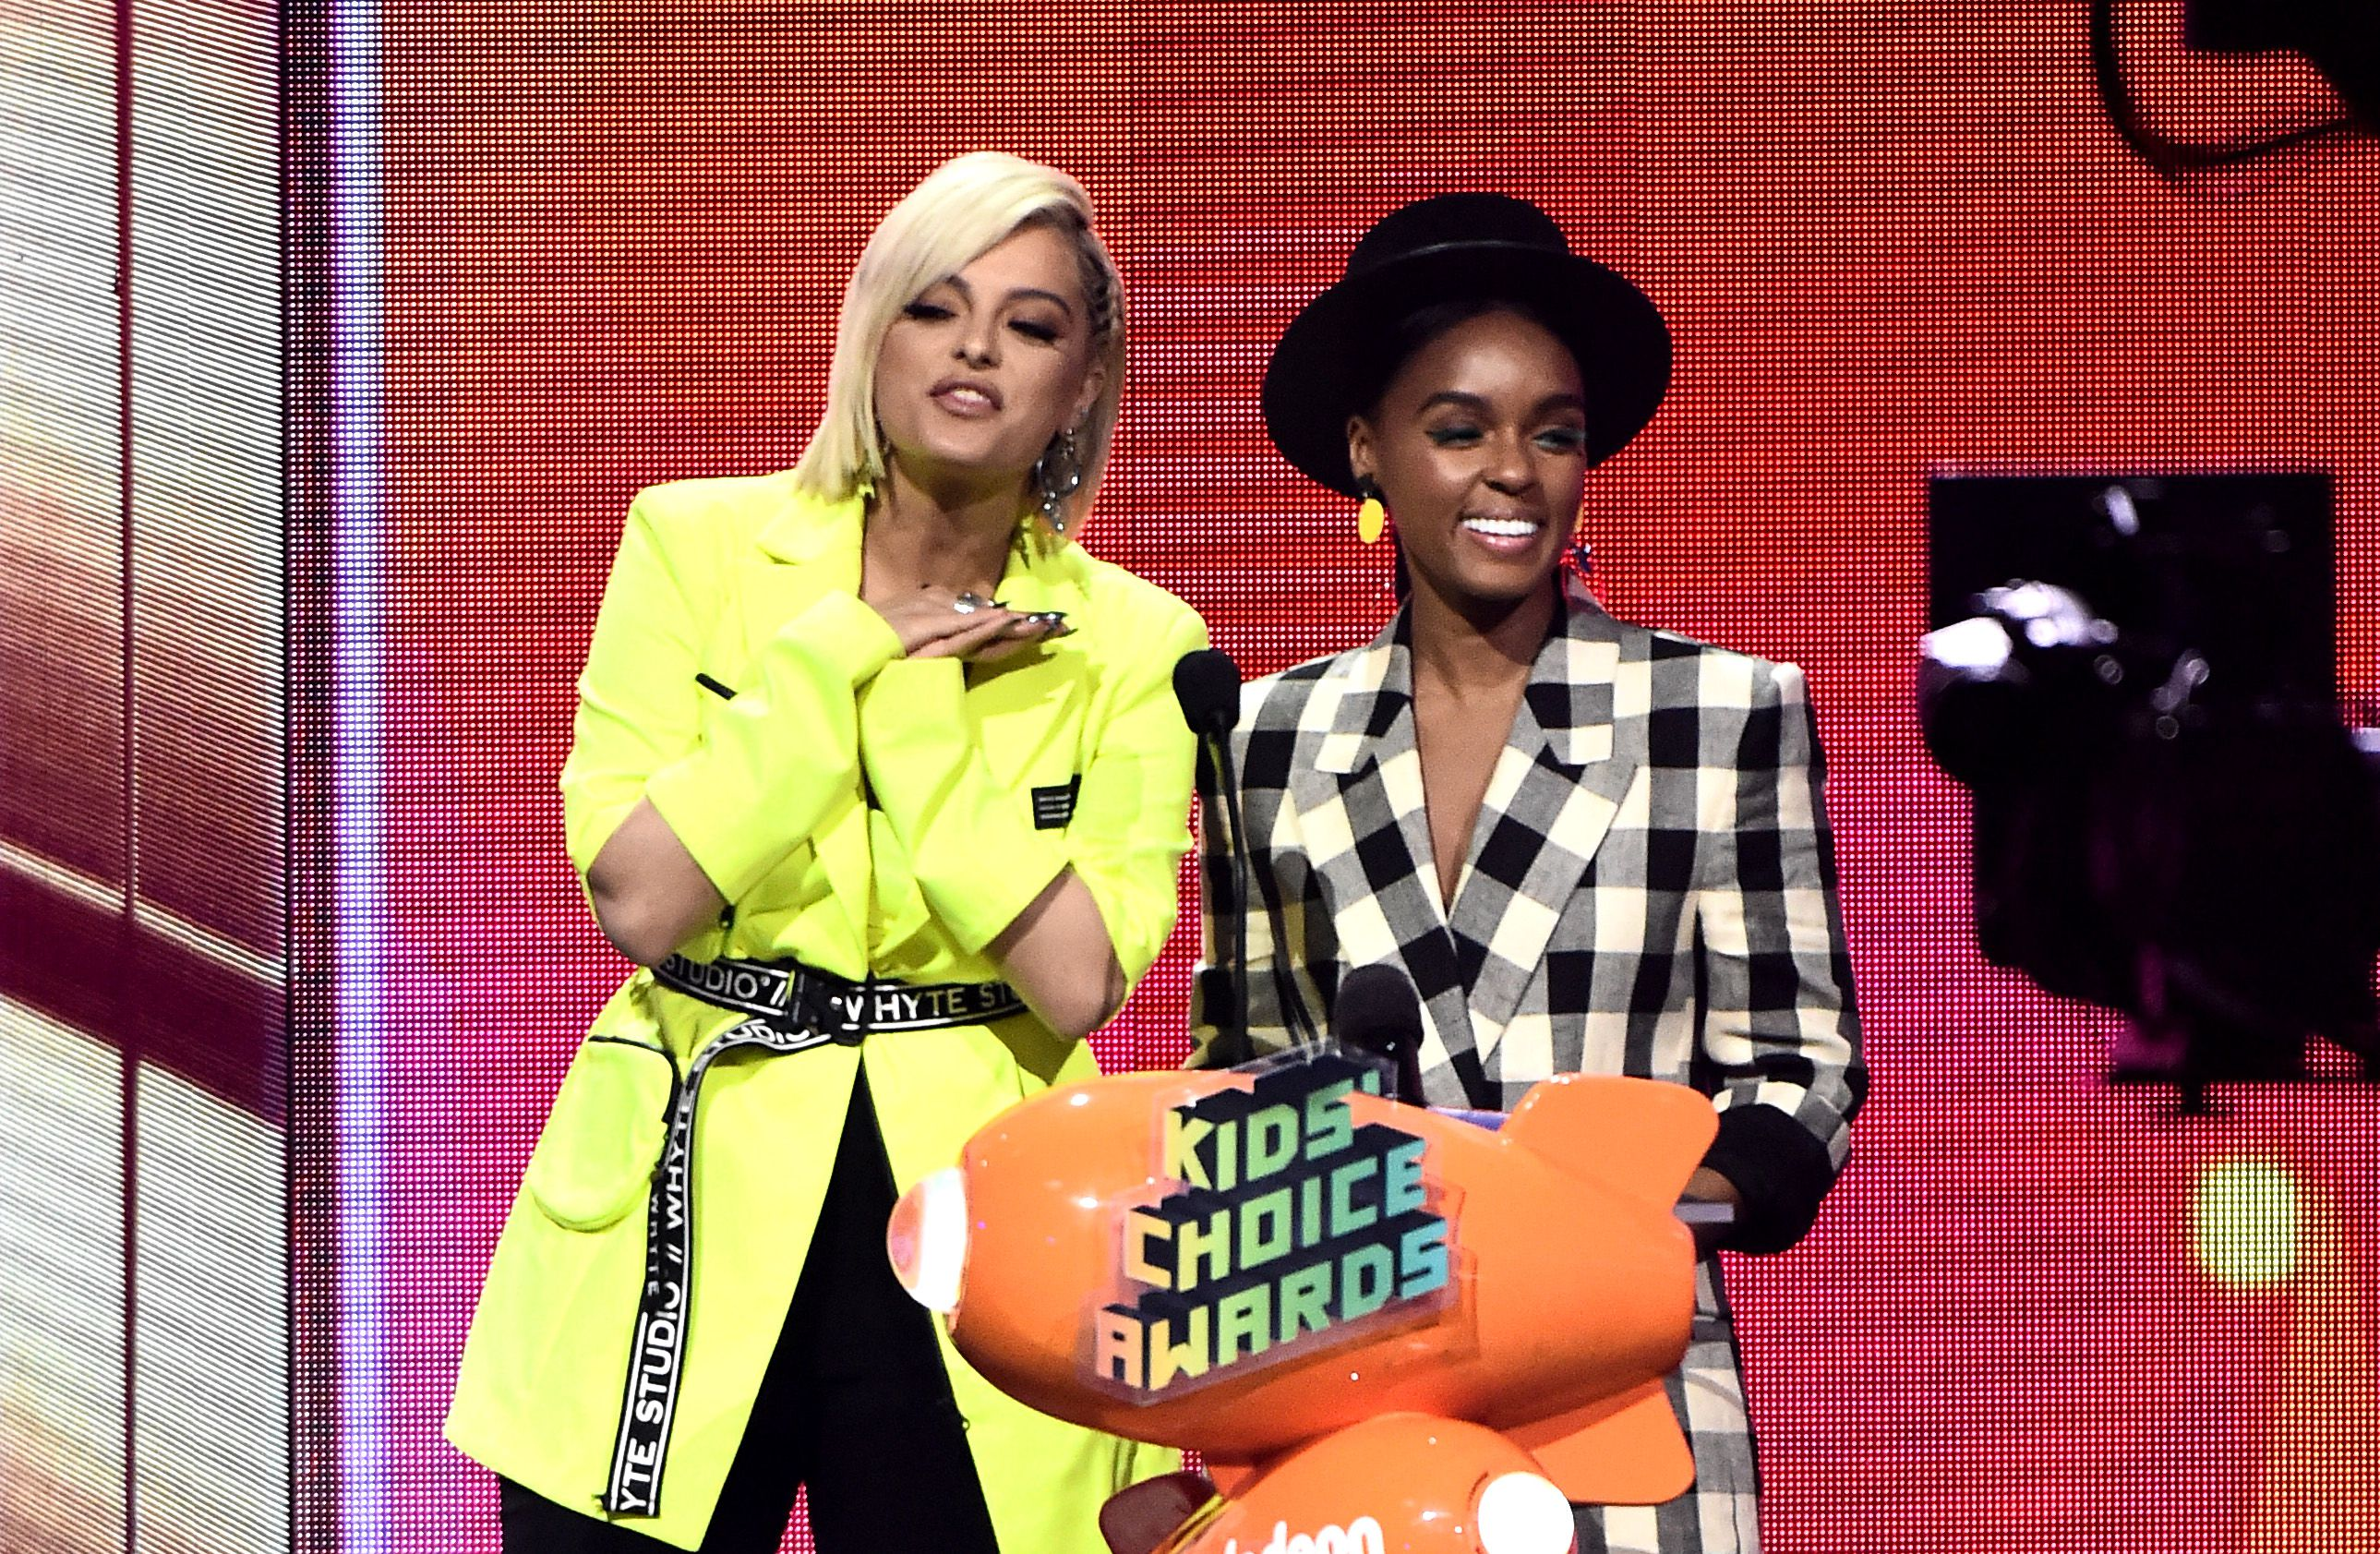 Janelle Monae and Bebe Rexha Wore Coordinating Outfits to the Kid's Choice Awards and I'm Crying